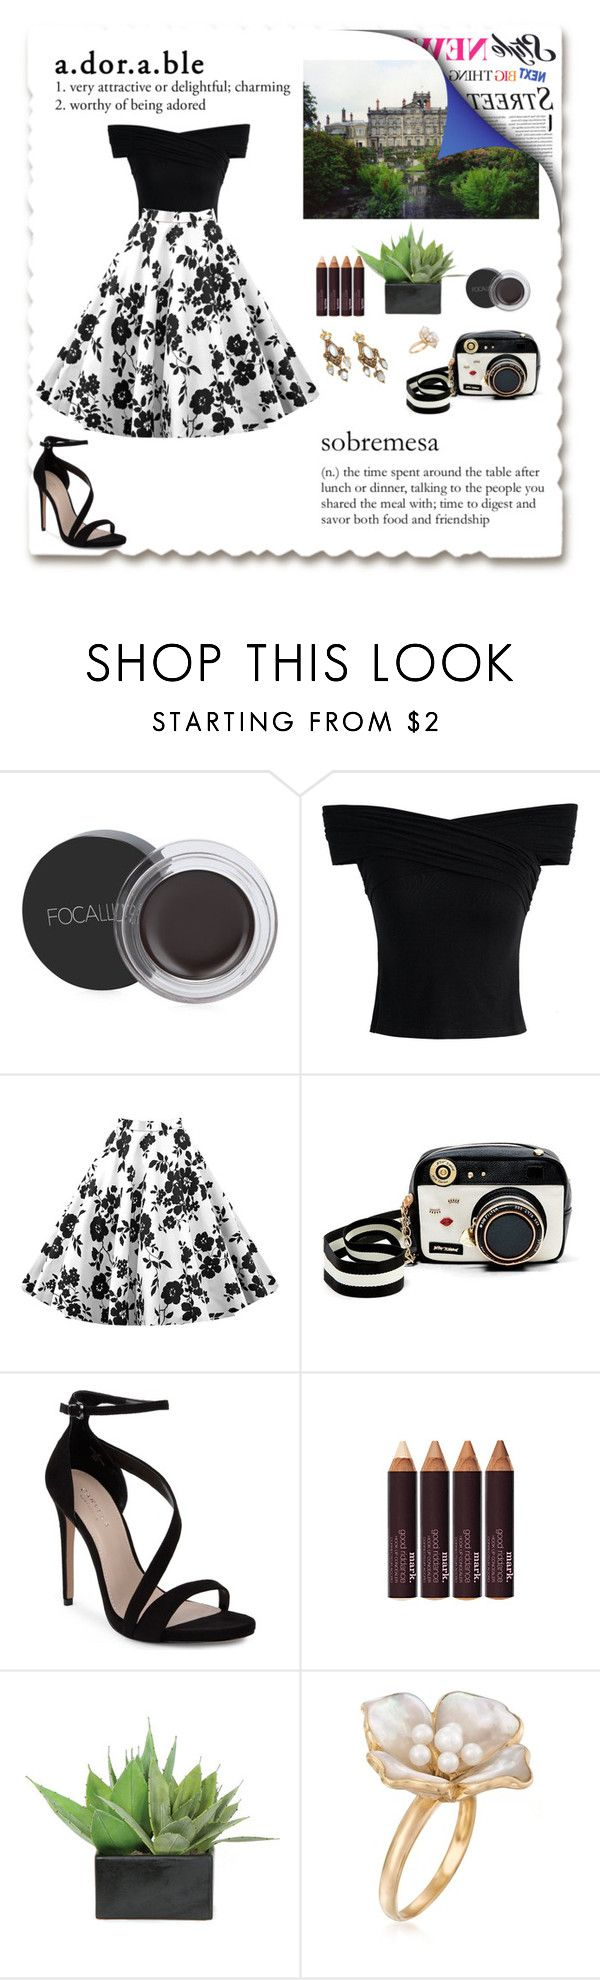 """Classy Girl"" by gina-is-in-style ❤ liked on Polyvore featuring Chicwish, Betsey Johnson, Carvela, mark., Lux-Art Silks and Ross-Simons"